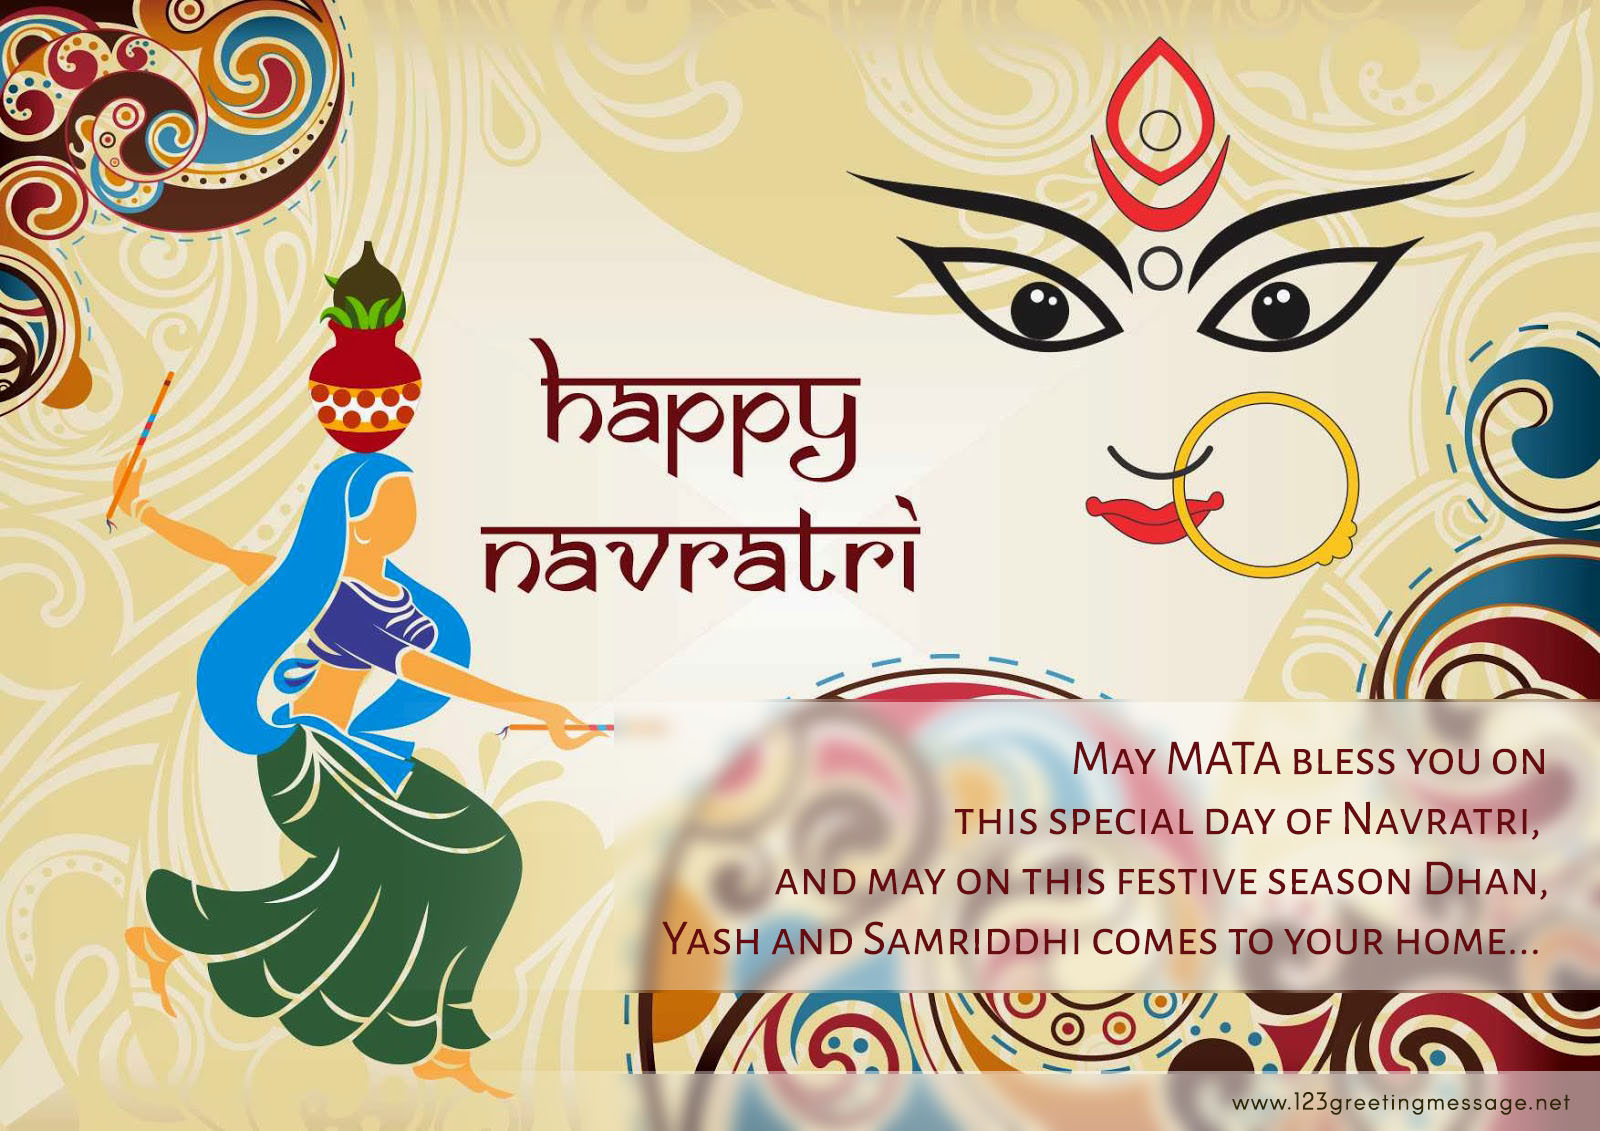 Happy Navratri 2019 Wallpapers